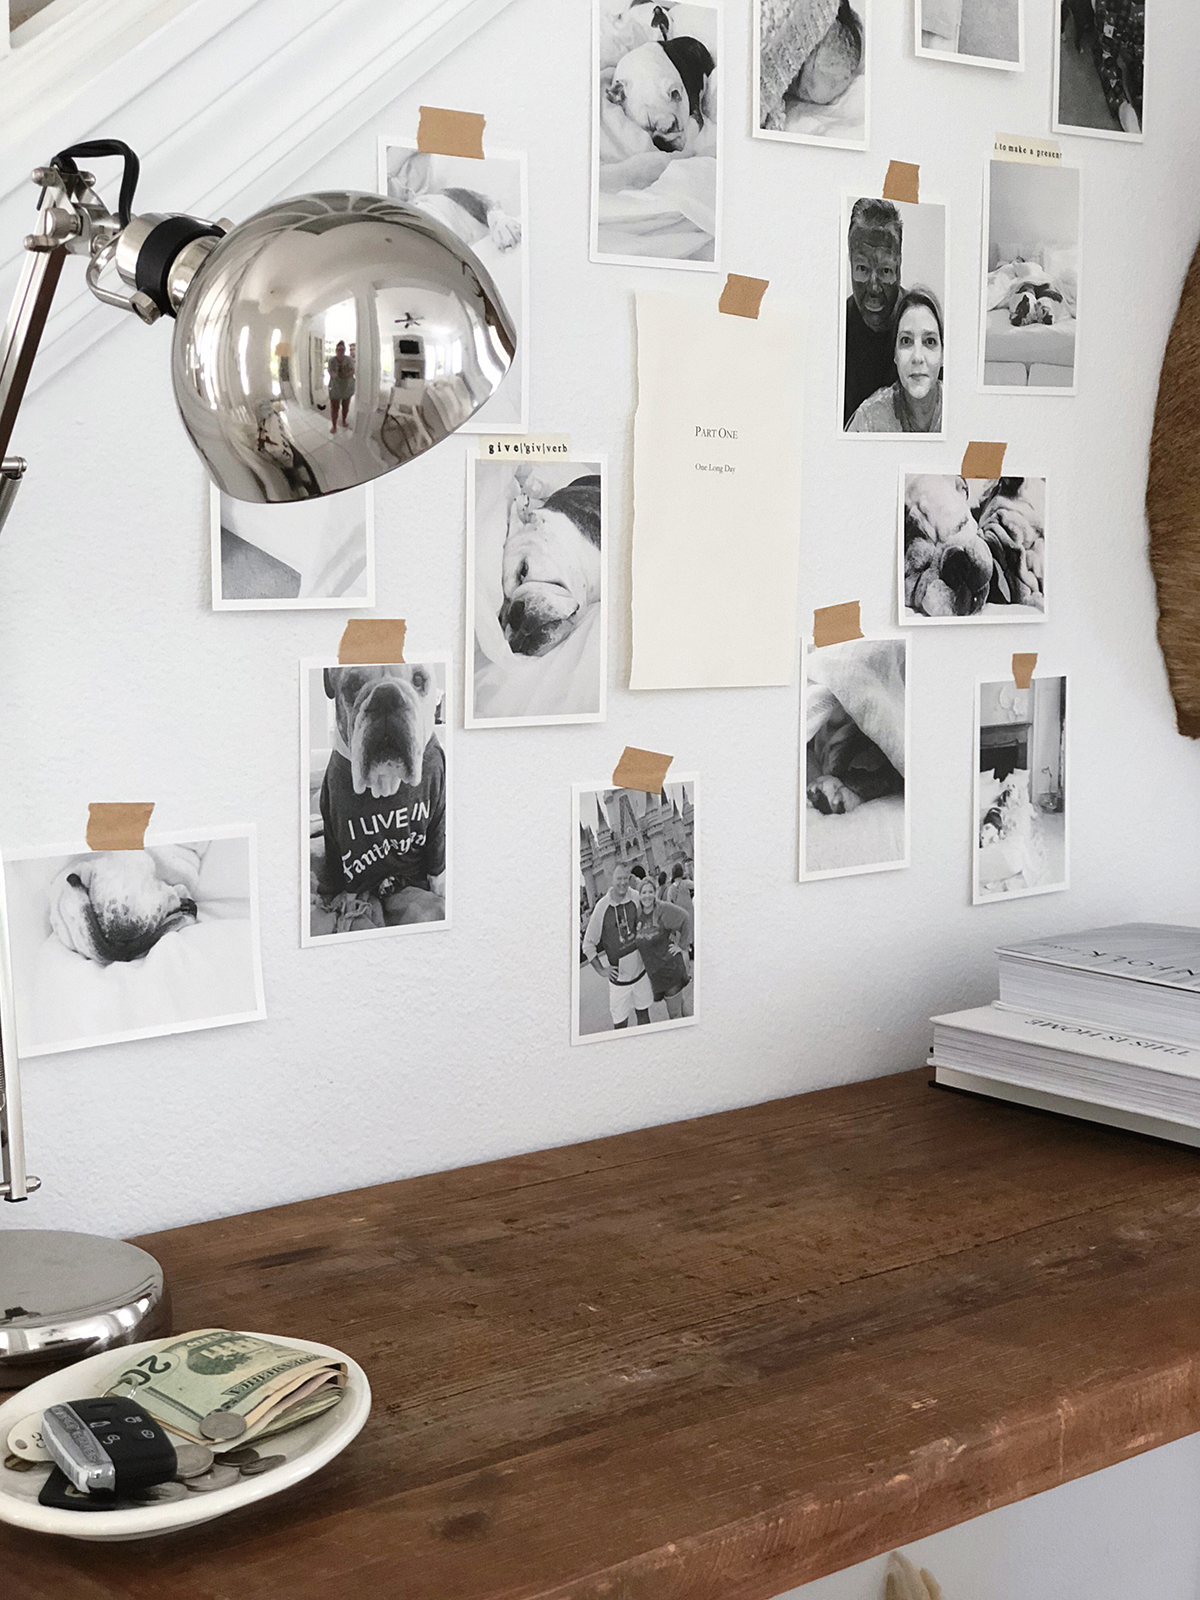 Wall with photo prints of dog taped up